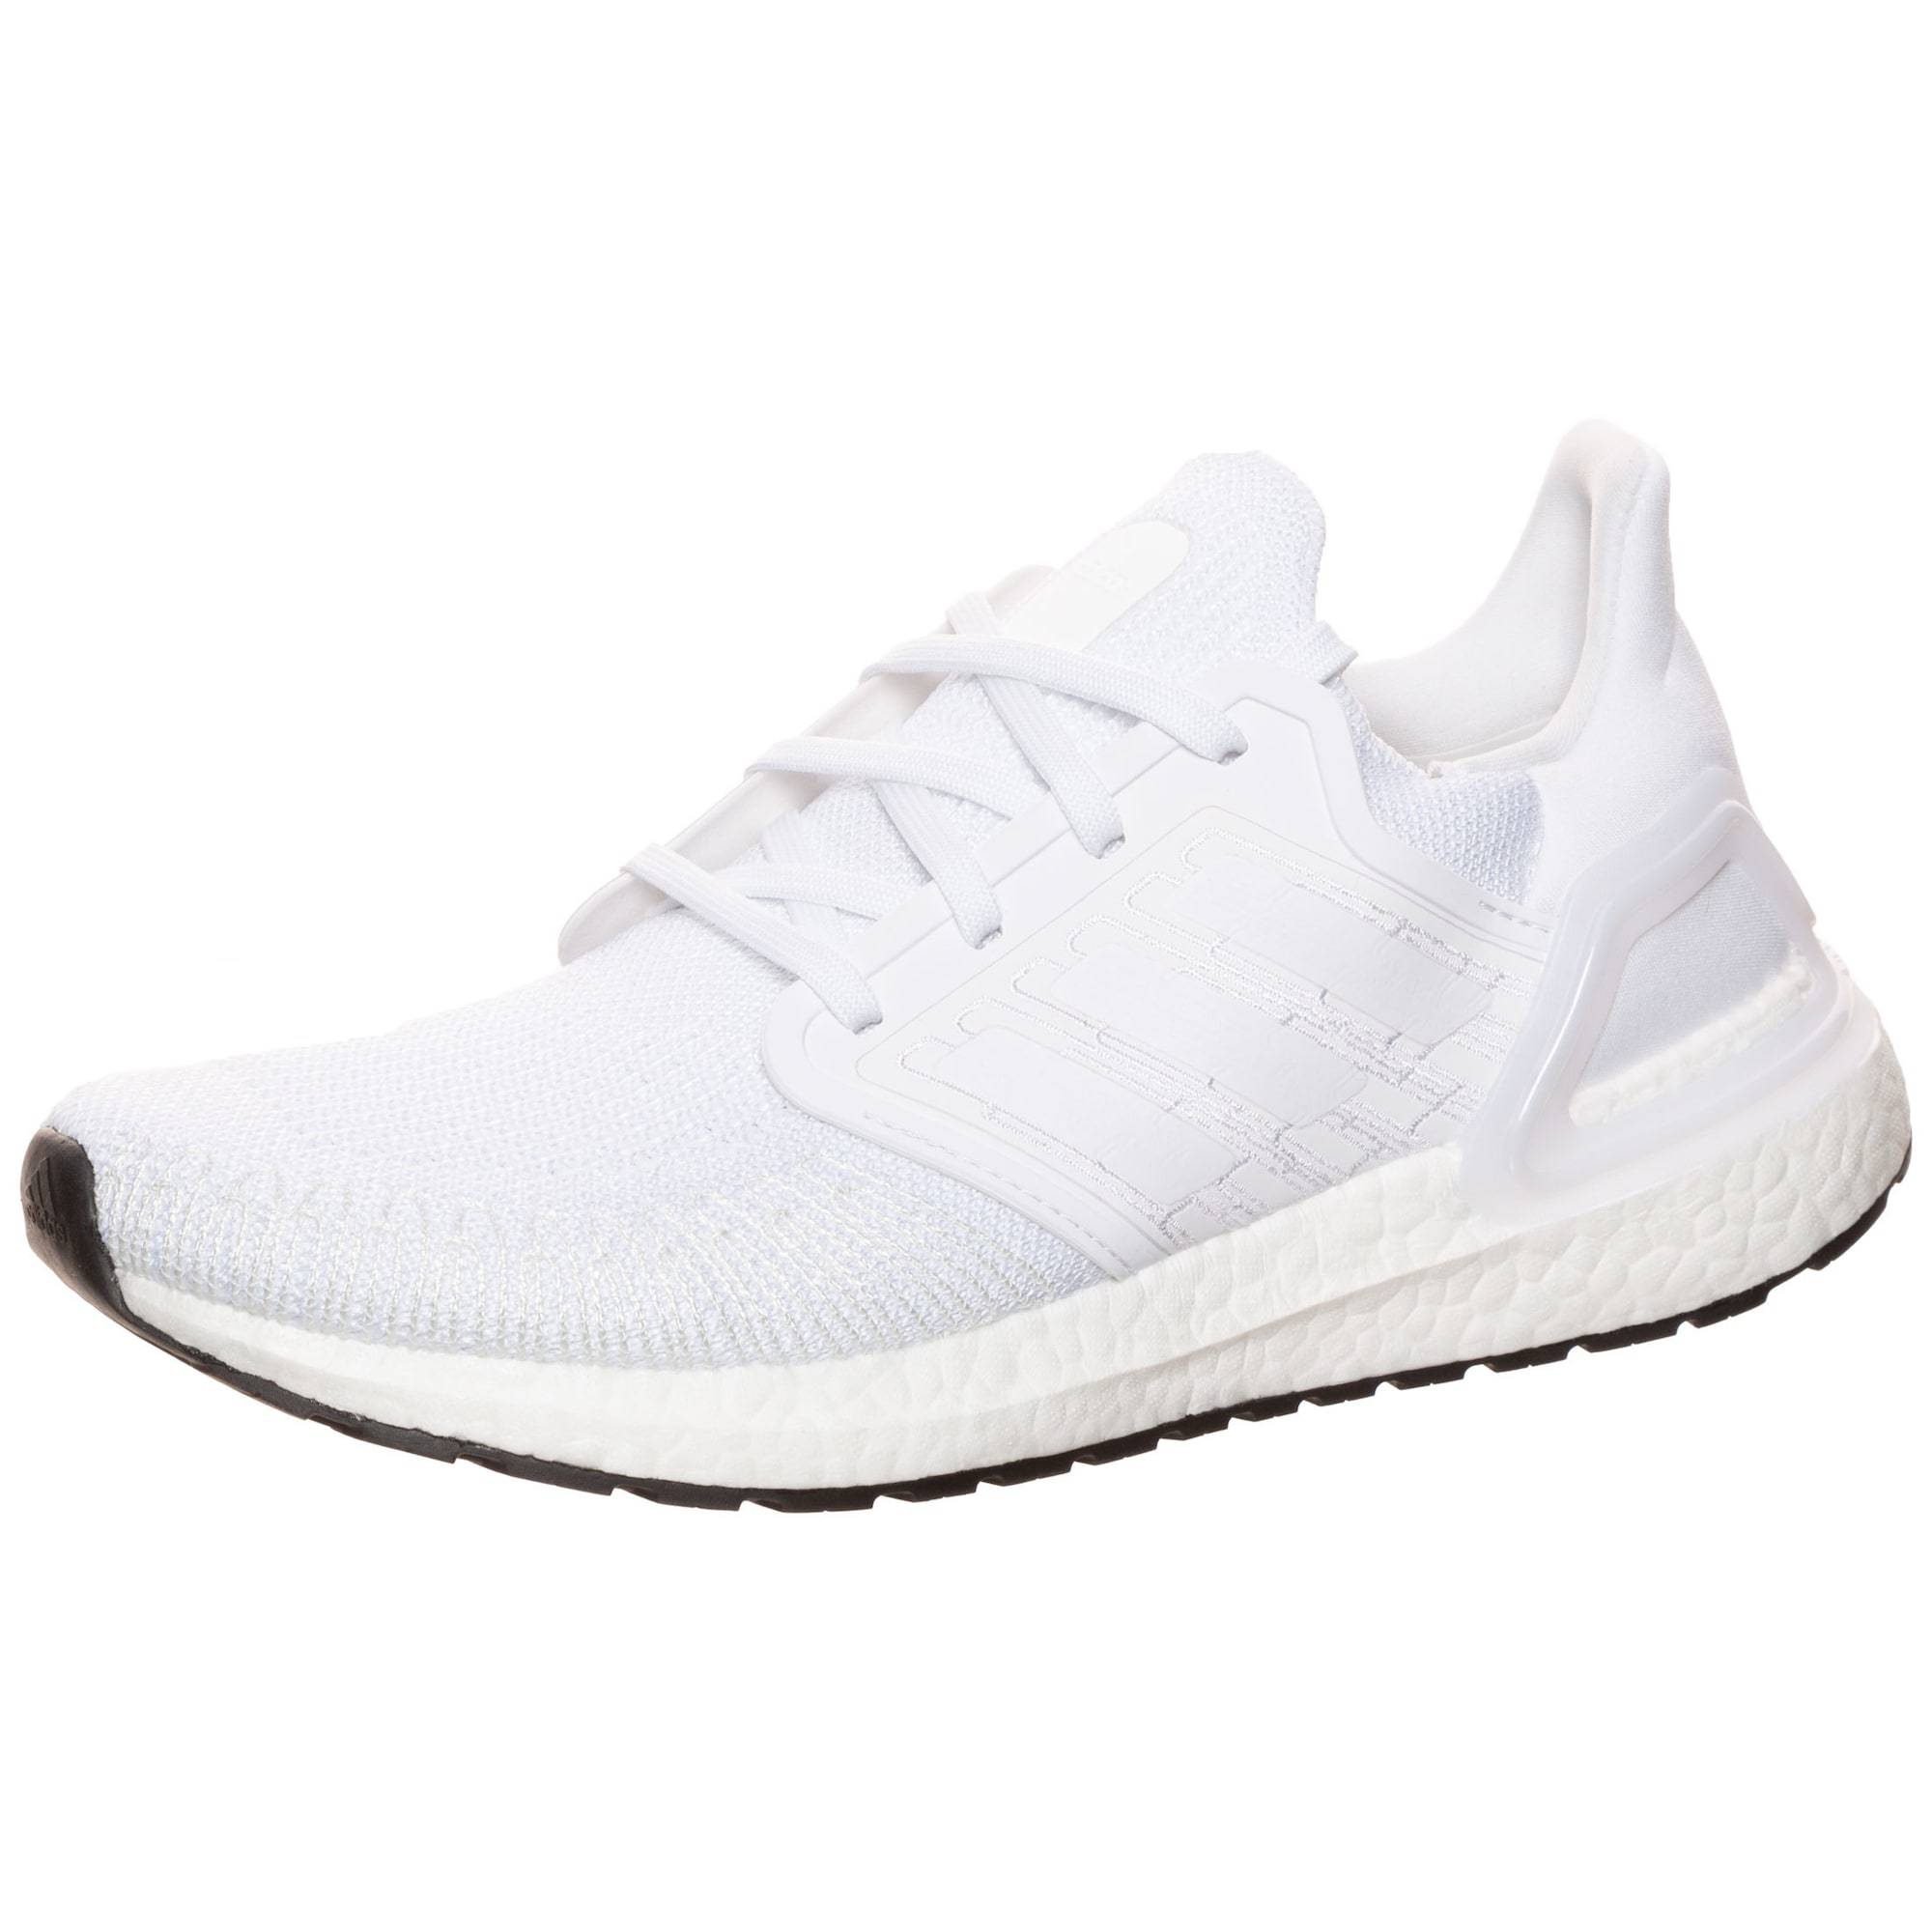 ADIDAS PERFORMANCE Chaussure de course 'ULTRABOOST 20 W'  - Blanc - Taille: 4.5 - female